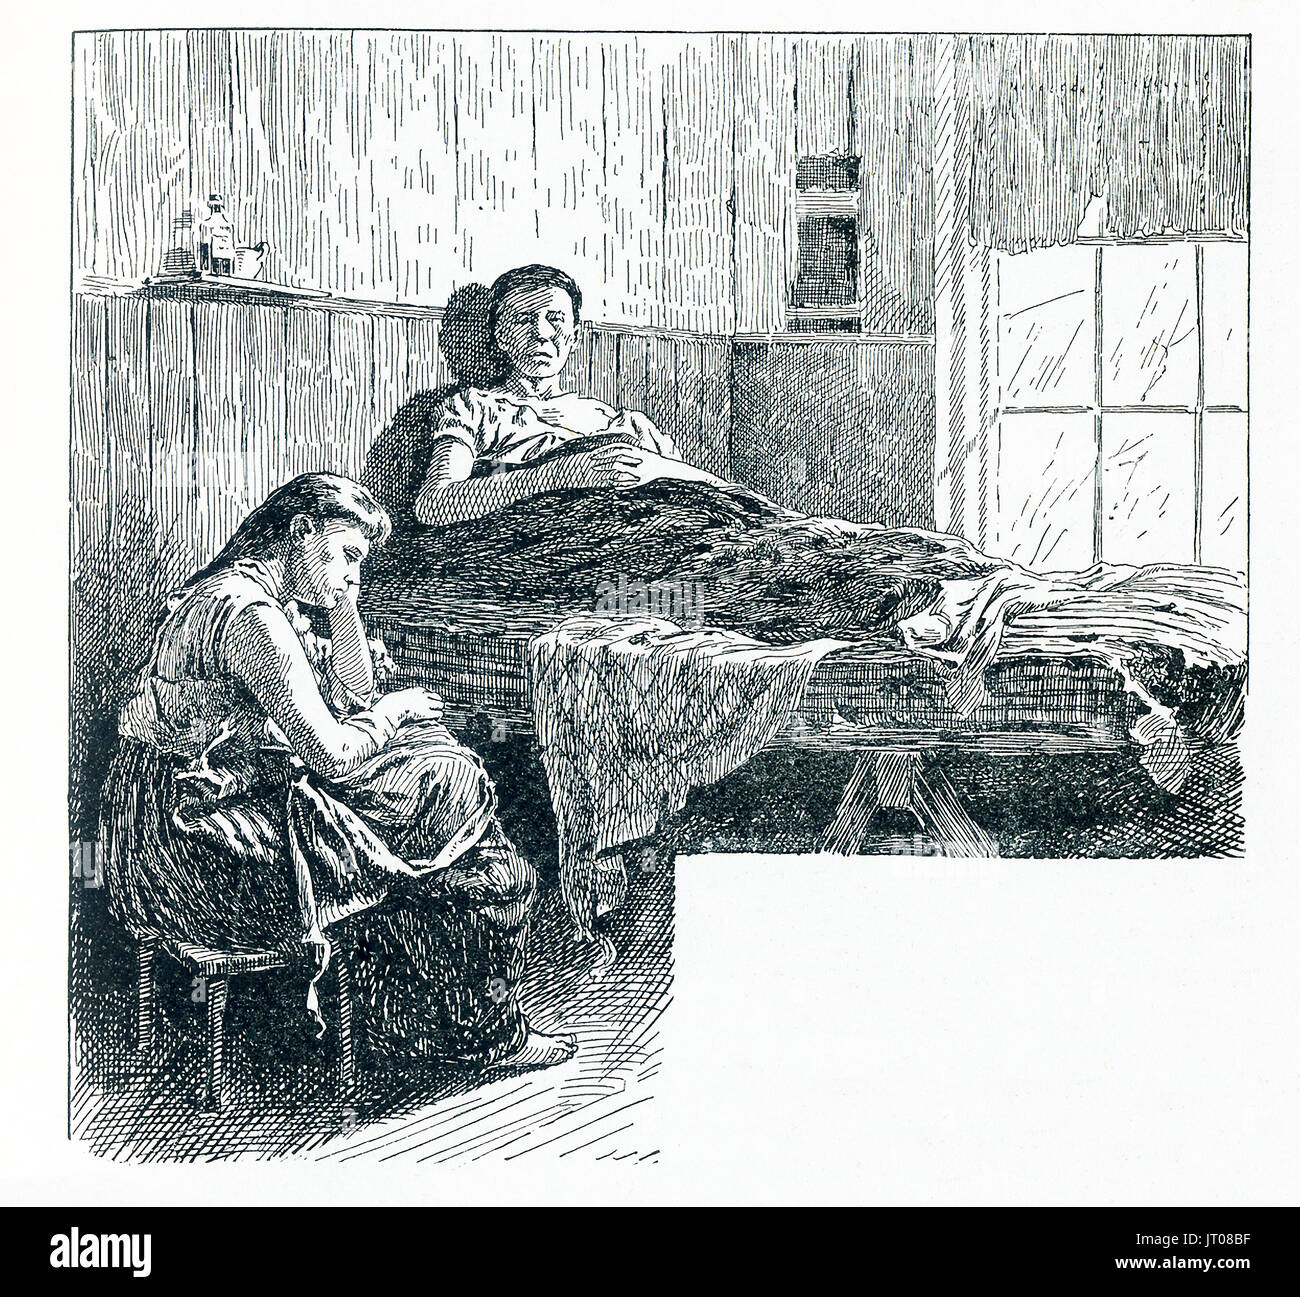 This late 19he-century illustration shows two tenants in New York City in a tenement that was near the Water Street Mission. In 1872 businessman Frederick Hatch bought the property in Lower Manhattan that became the Water Street Mission. He had met Jerry McAuley and put him in charge of this new venture - America's first Rescue Mission. - Stock Image